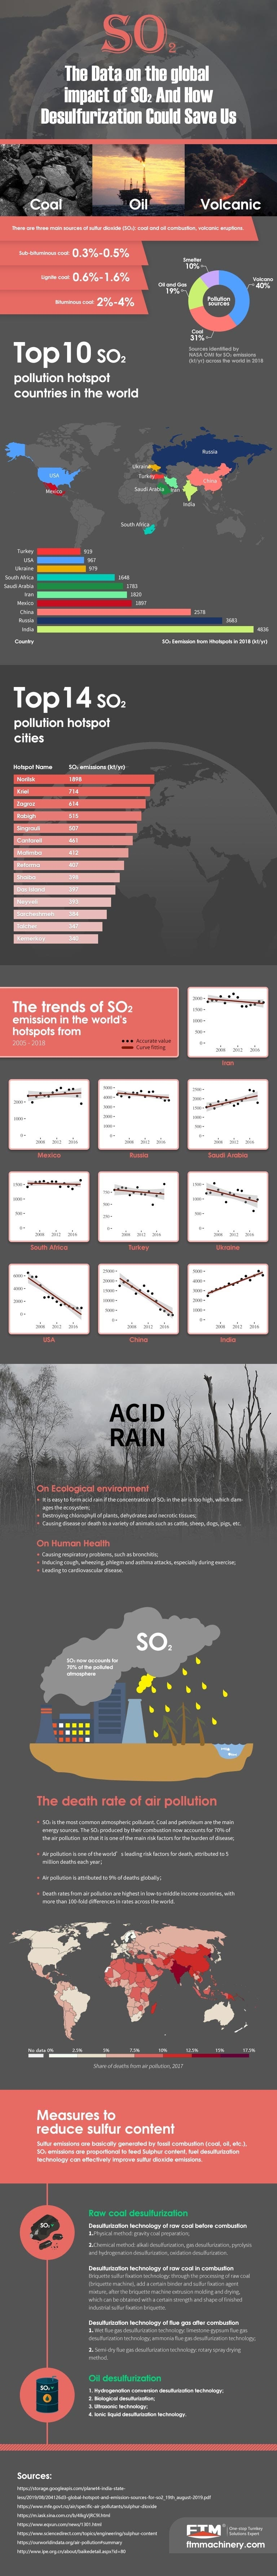 The Global Data of Sulfur Dioxide and How to Reduce Emissions #infographic